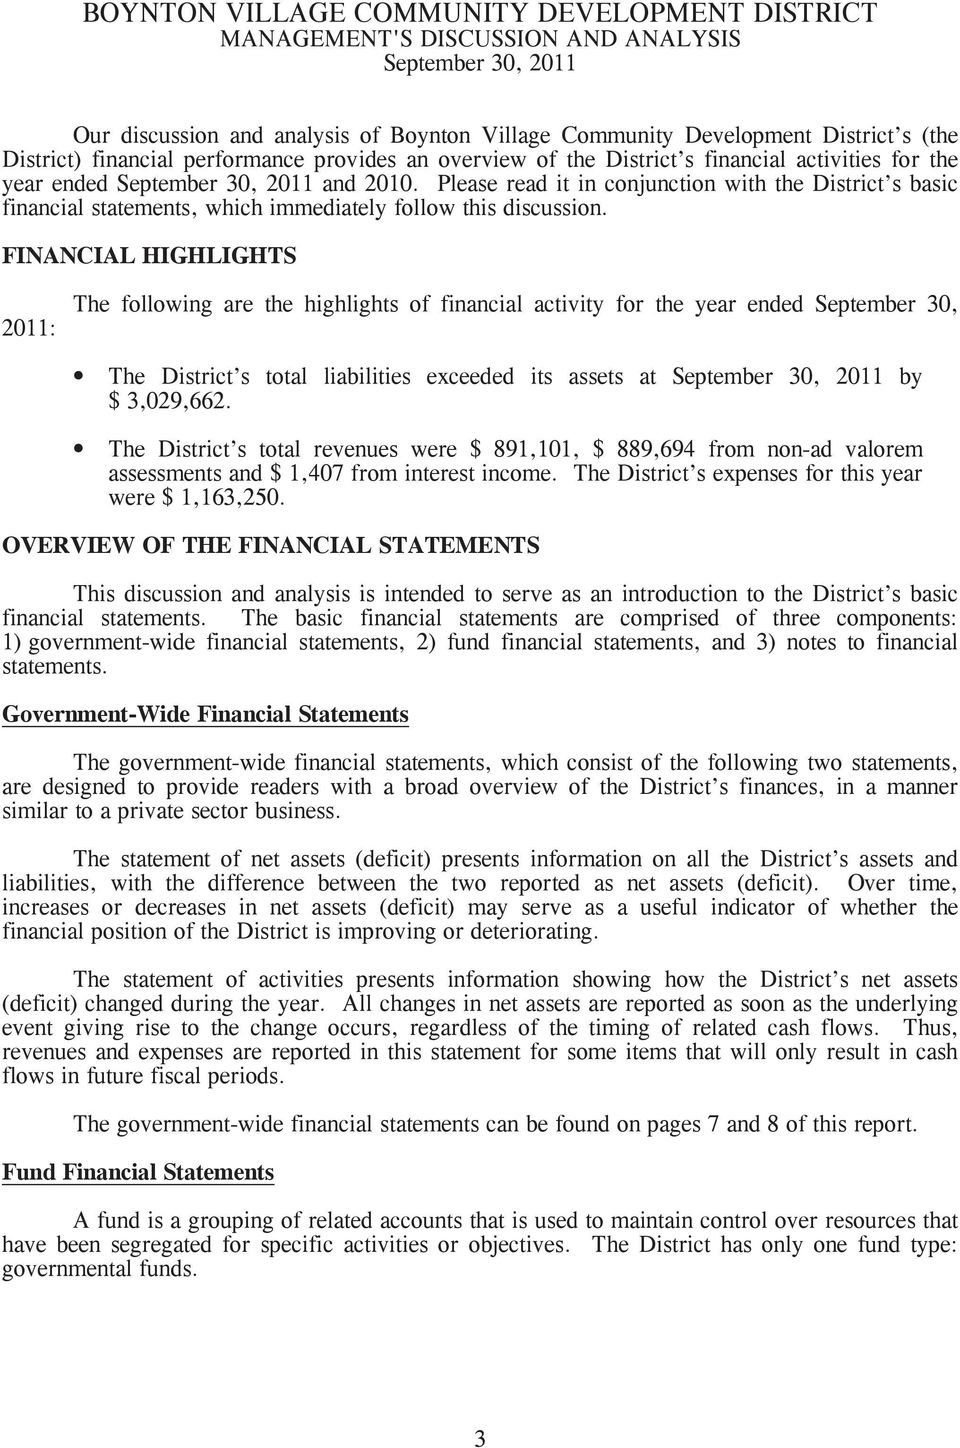 FINANCIAL HIGHLIGHTS 2011: The following are the highlights of financial activity for the year ended September 30, The District s total liabilities exceeded its assets at by $ 3,029,662.